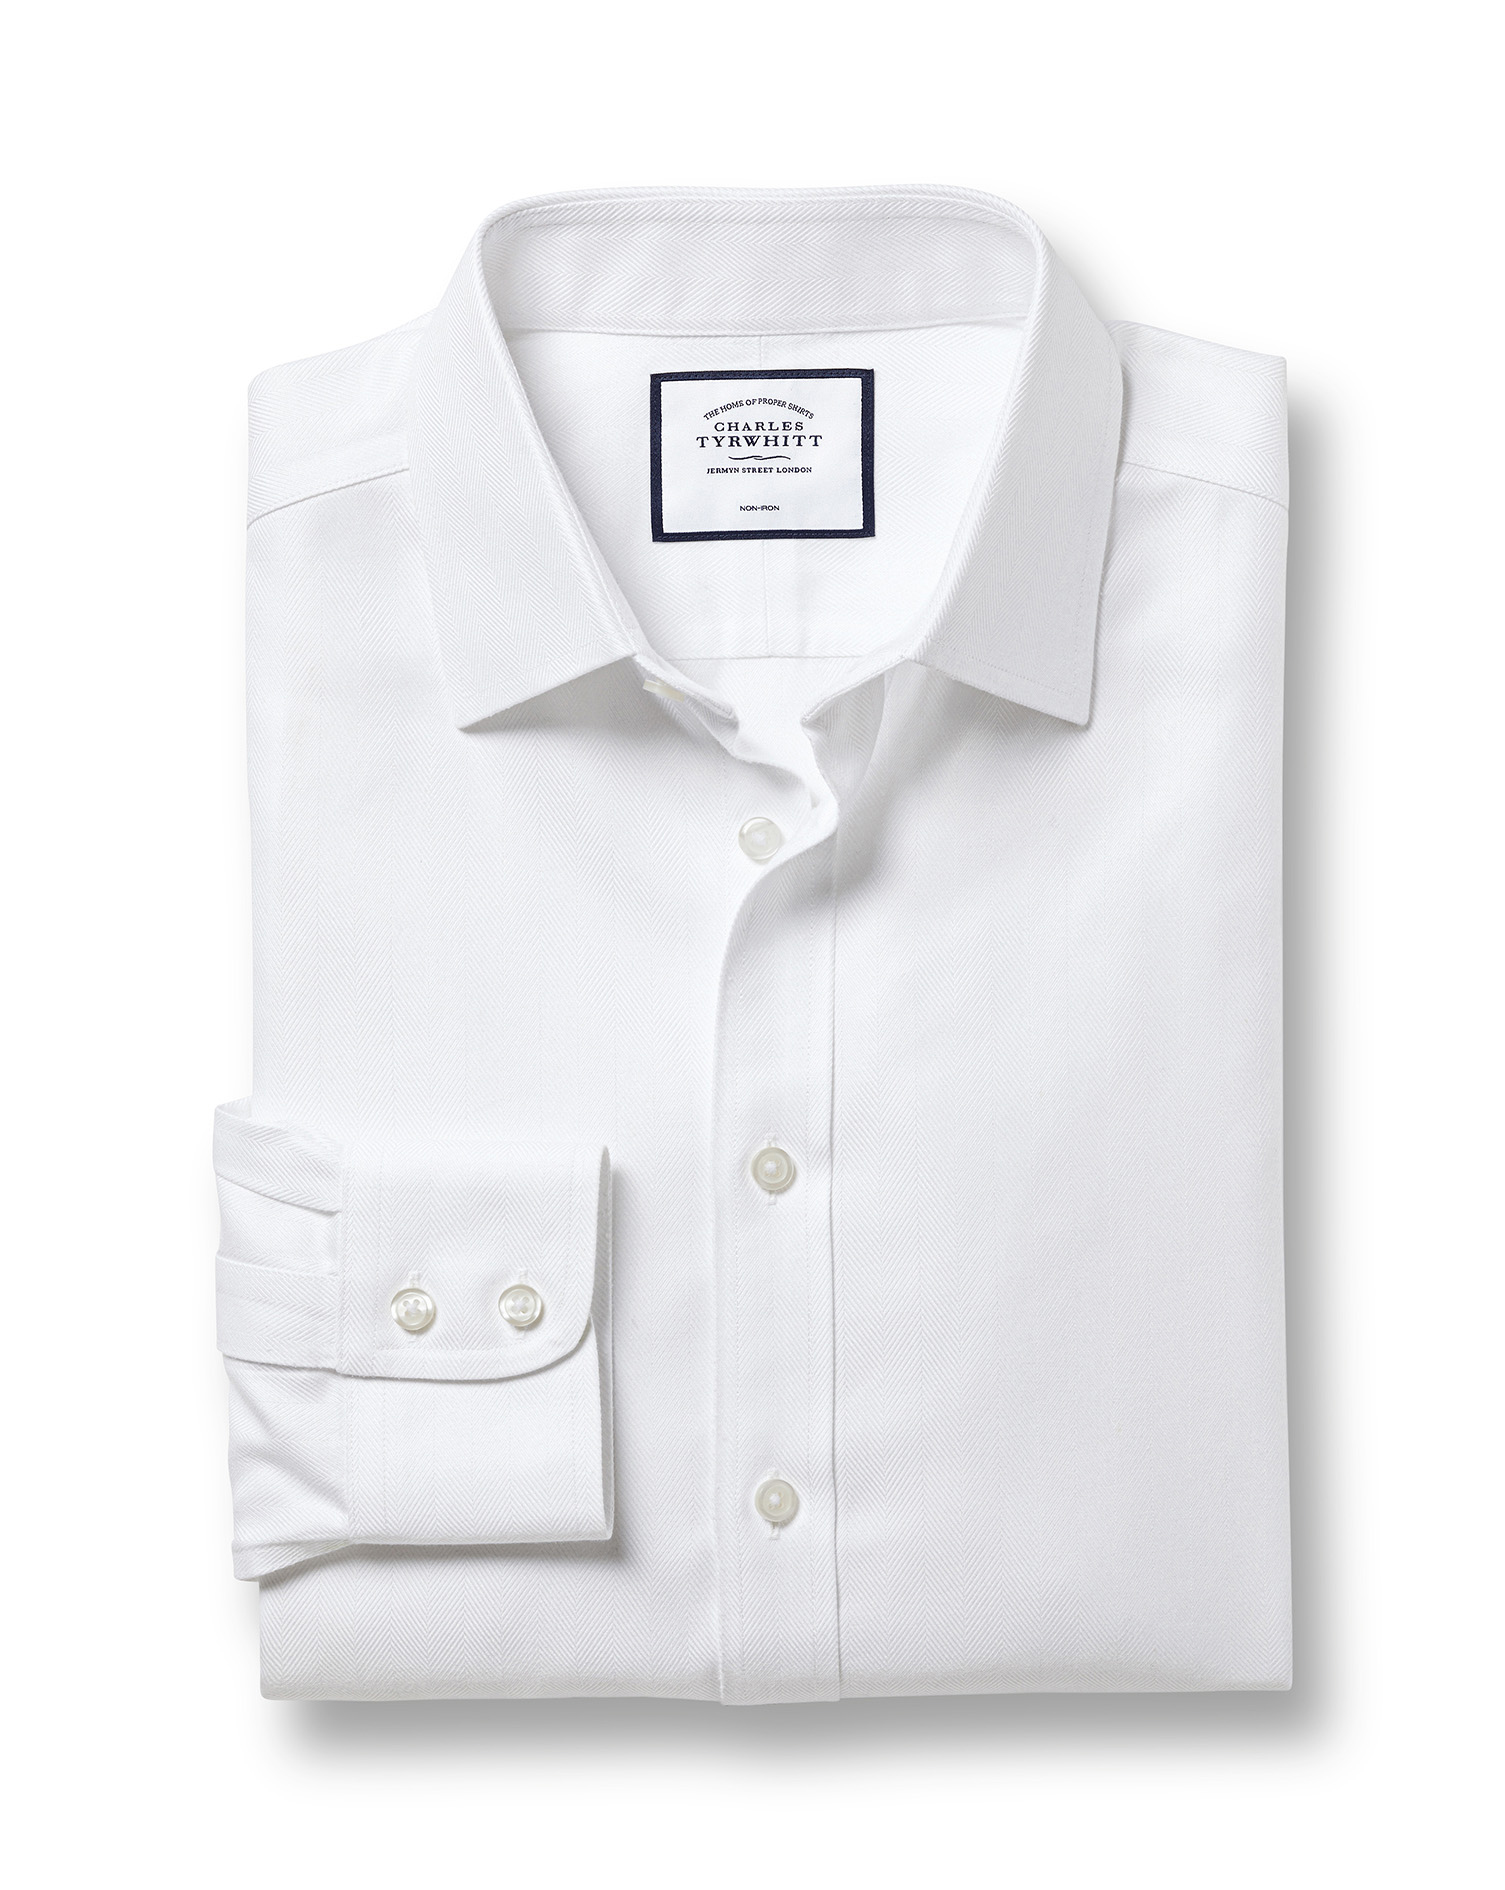 Classic Fit Non-Iron Herringbone White Cotton Formal Shirt Double Cuff Size 15/33 by Charles Tyrwhit